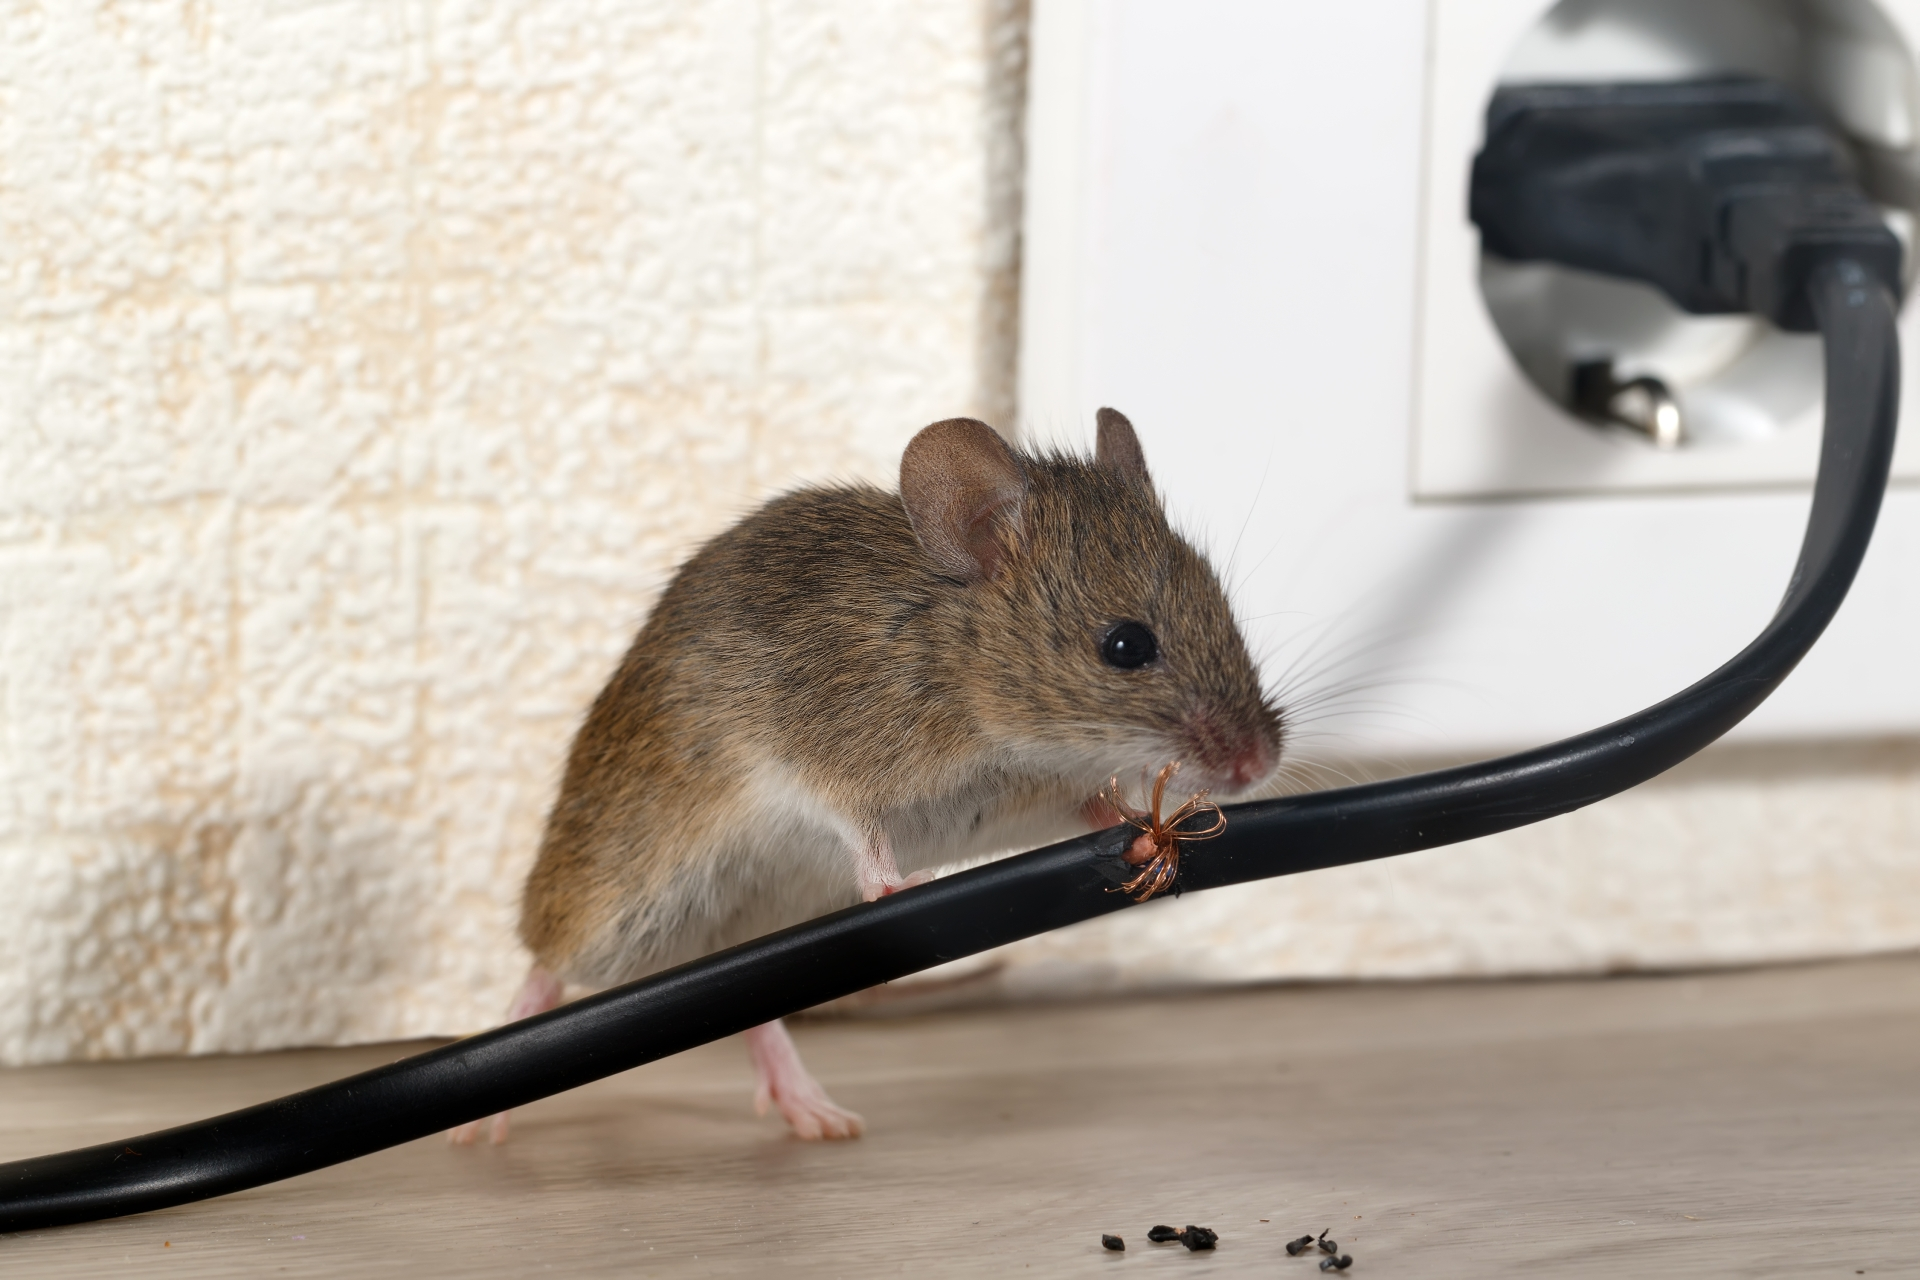 Mice Infestation, Pest Control in Beckenham, Elmers End, Park Langley, BR3. Call Now 020 8166 9746